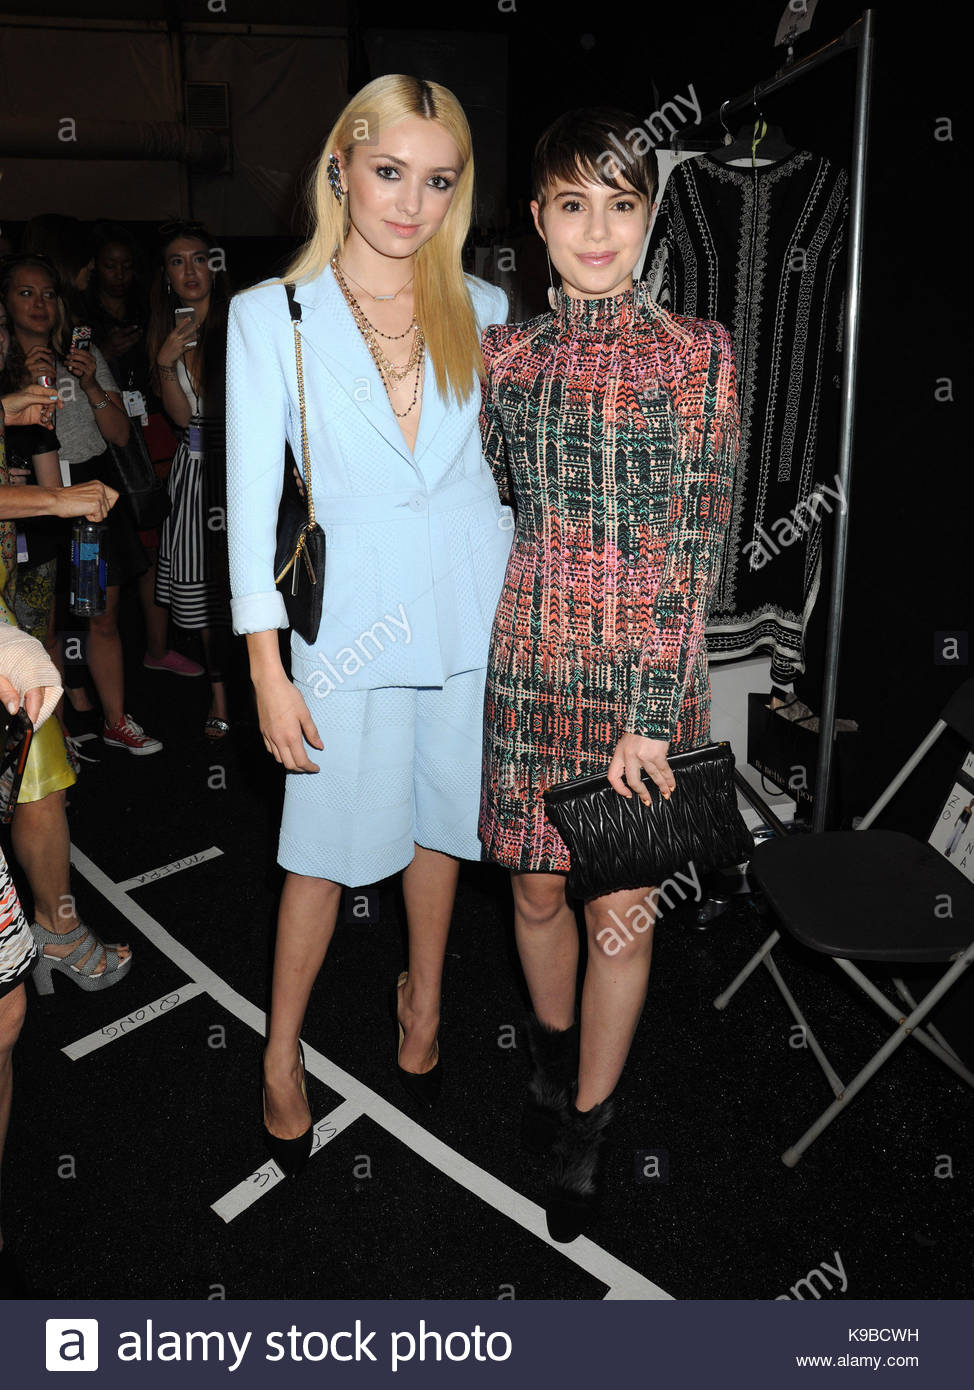 Watch - Celebrities row front at nyfw spring video